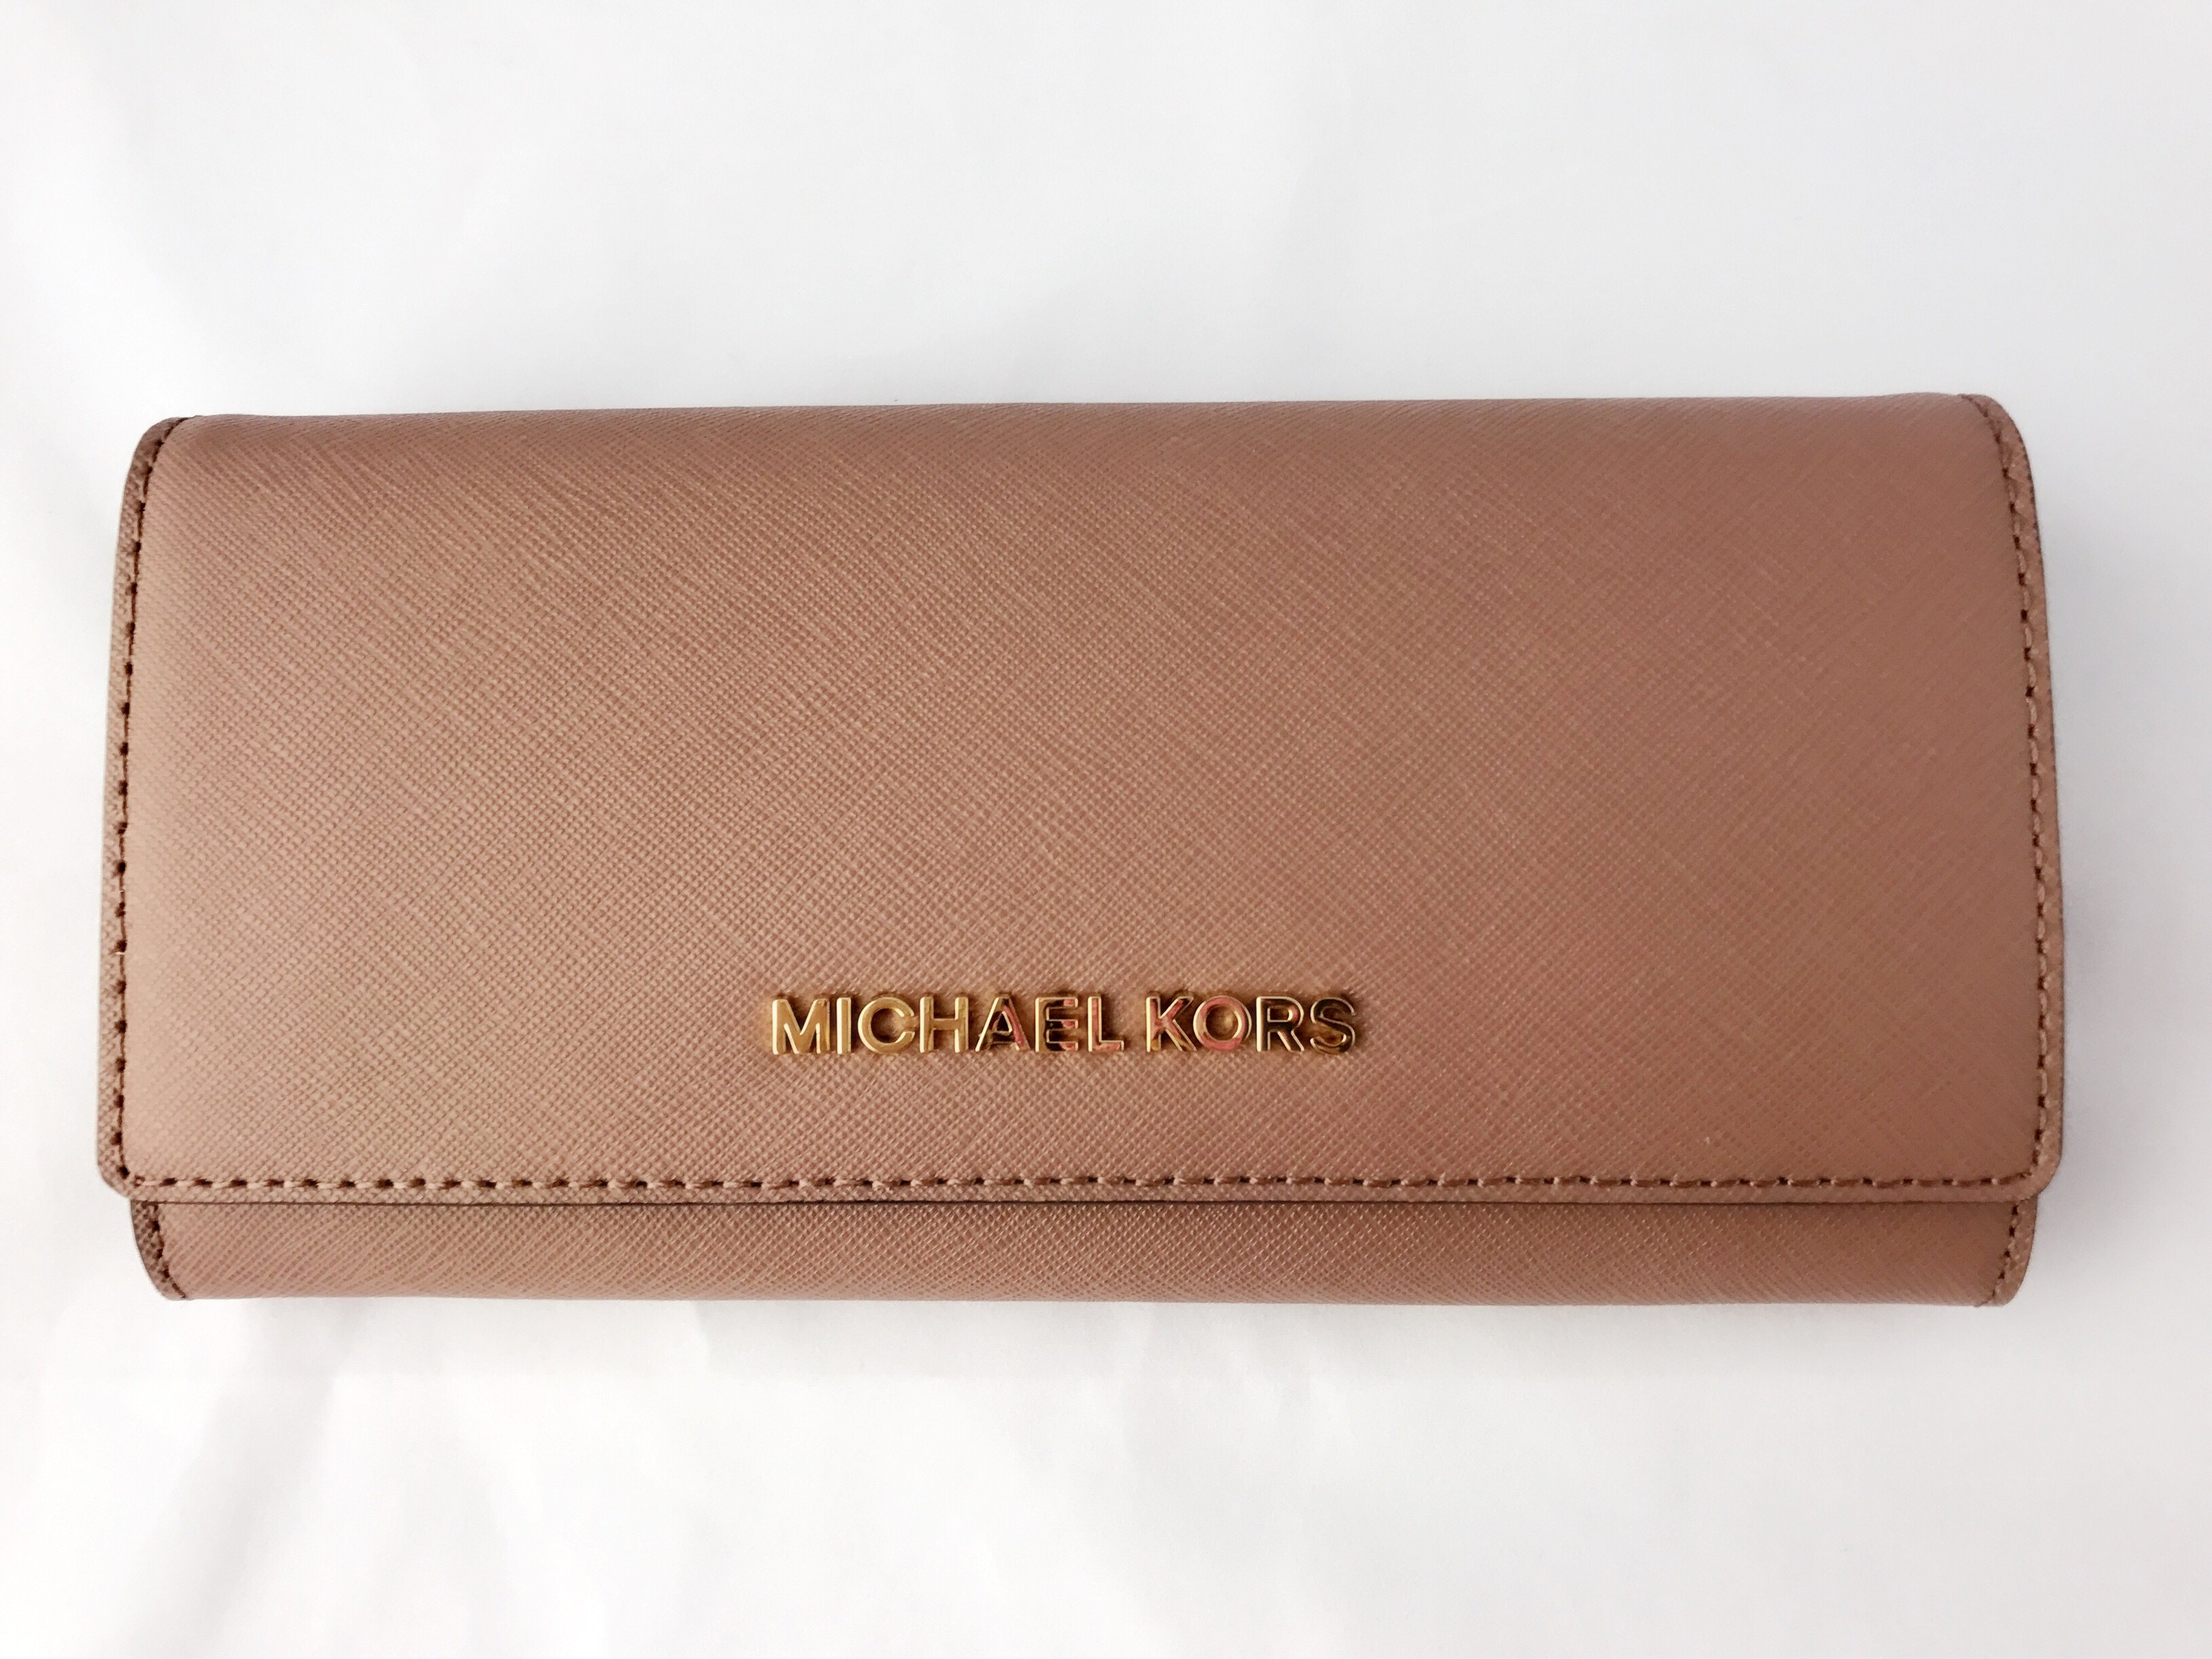 f78c1a37632b Michael Kors Jet Set Travel Wallet Saffiano Leather Brown Vanilla Dusty  Rose | eBay